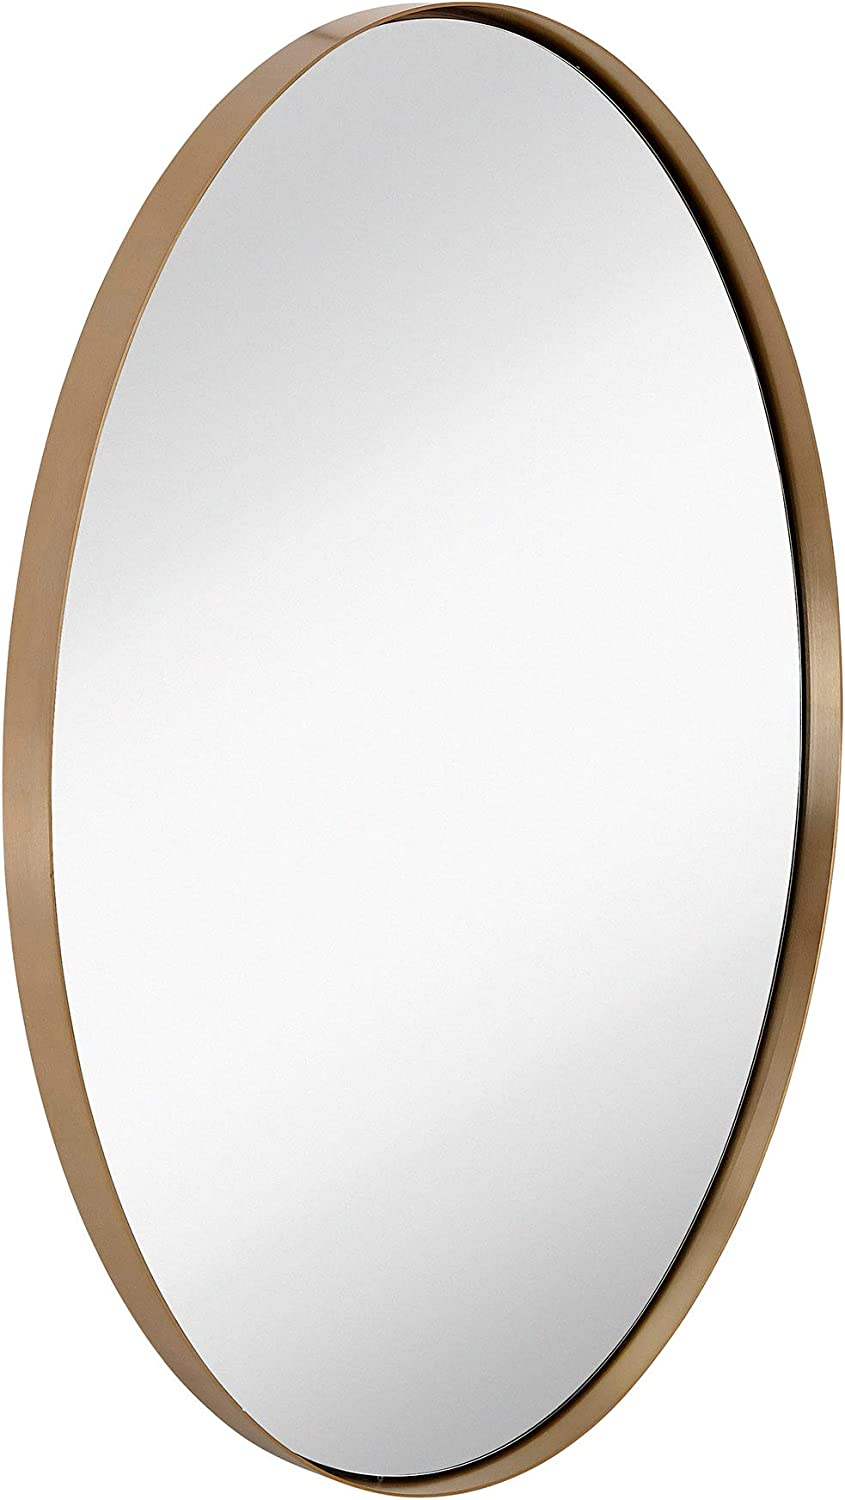 "Hamilton Hills Contemporary Brushed Metal Wall Mirror | Oval Gold Framed Rounded Deep Set Design | Mirrored Hangs Horizontal or Vertical (24"" x 36""): Home & Kitchen"